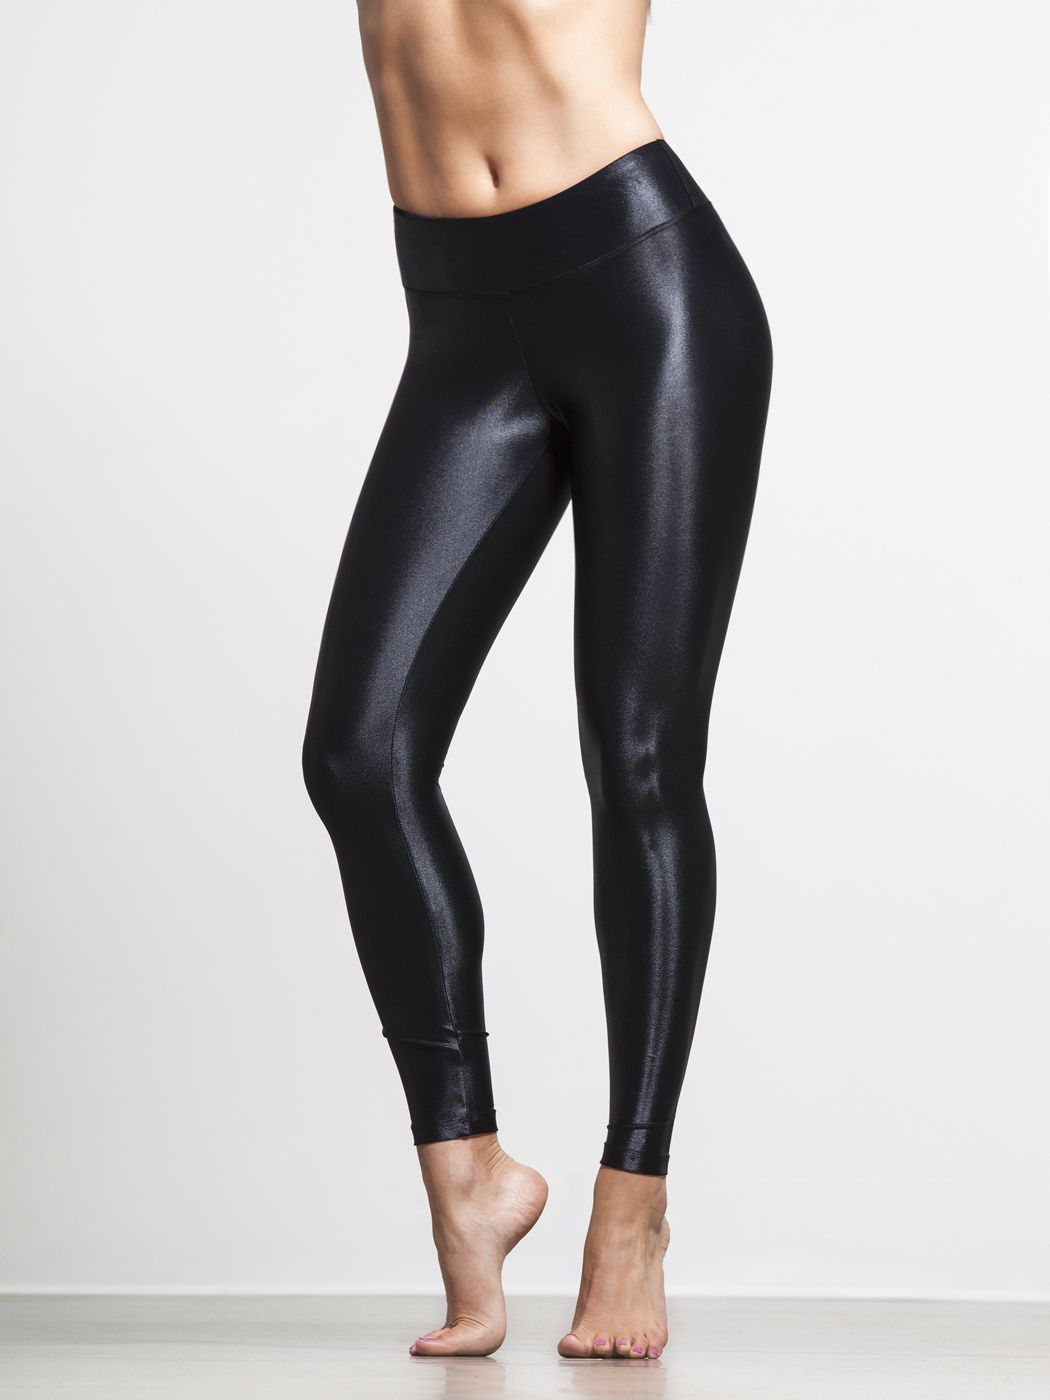 f18e47e56b584d Just because you feel at home on the yoga mat doesn't mean you want a matte  finish. Koral's sexy, shiny leggings give you a 'wet' look that's straight  out ...